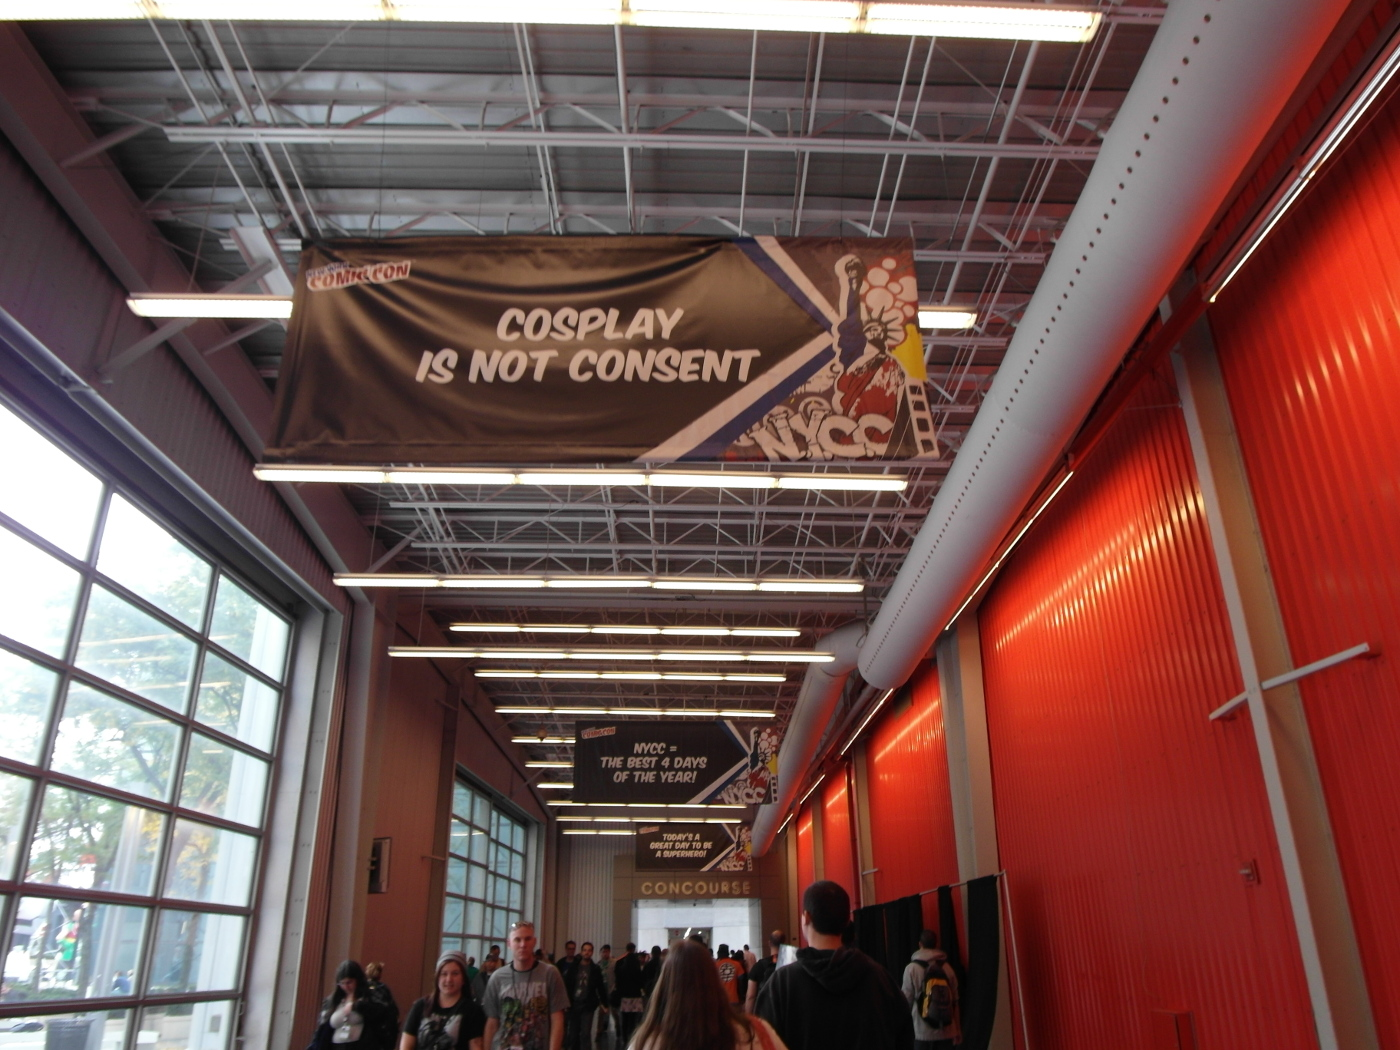 NYCC 2015 - Cosplay is not consent